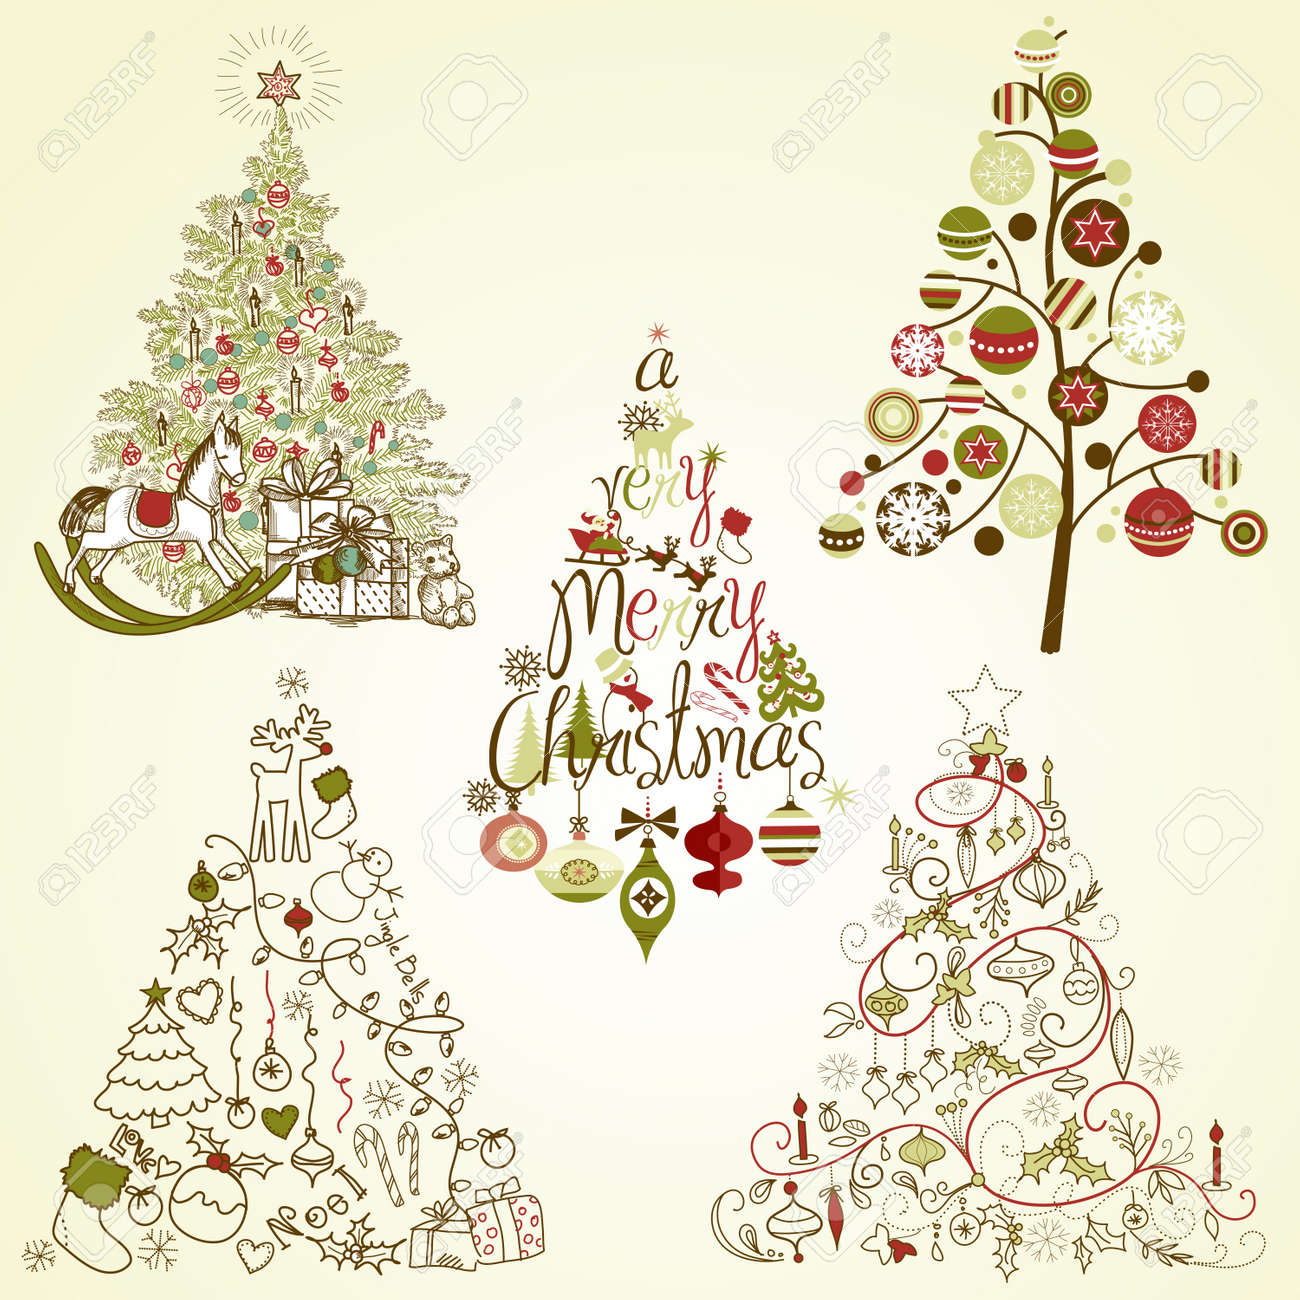 Christmas tree collection. Vintage, retro, cute, calligraphic - all type of hand drawn trees Stock Vector - 16681252